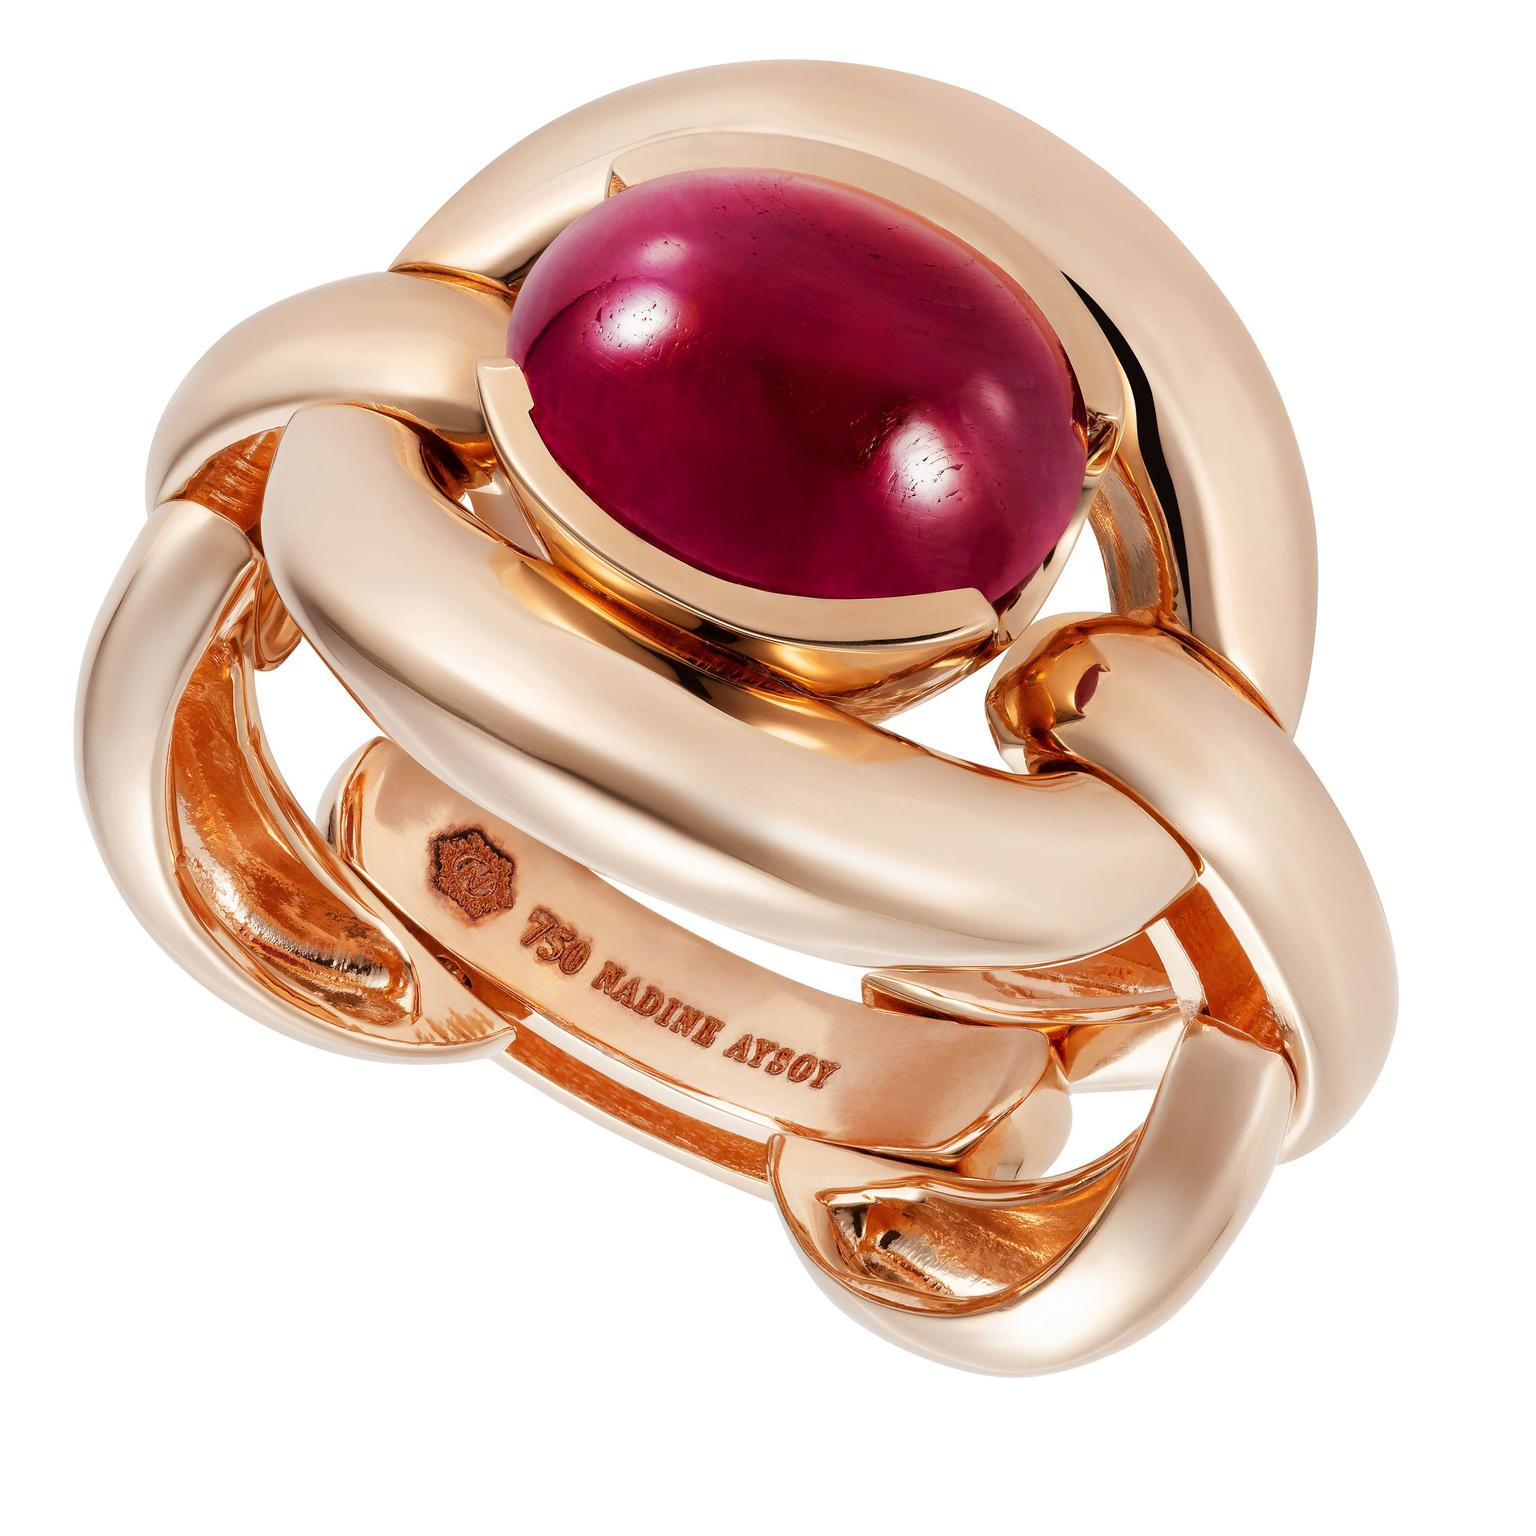 NAdine Aysoy RING RUBY CABOCHON, 18K Rose Gold (12.82g), Ruby Cabuchon 3.8CT, $3960